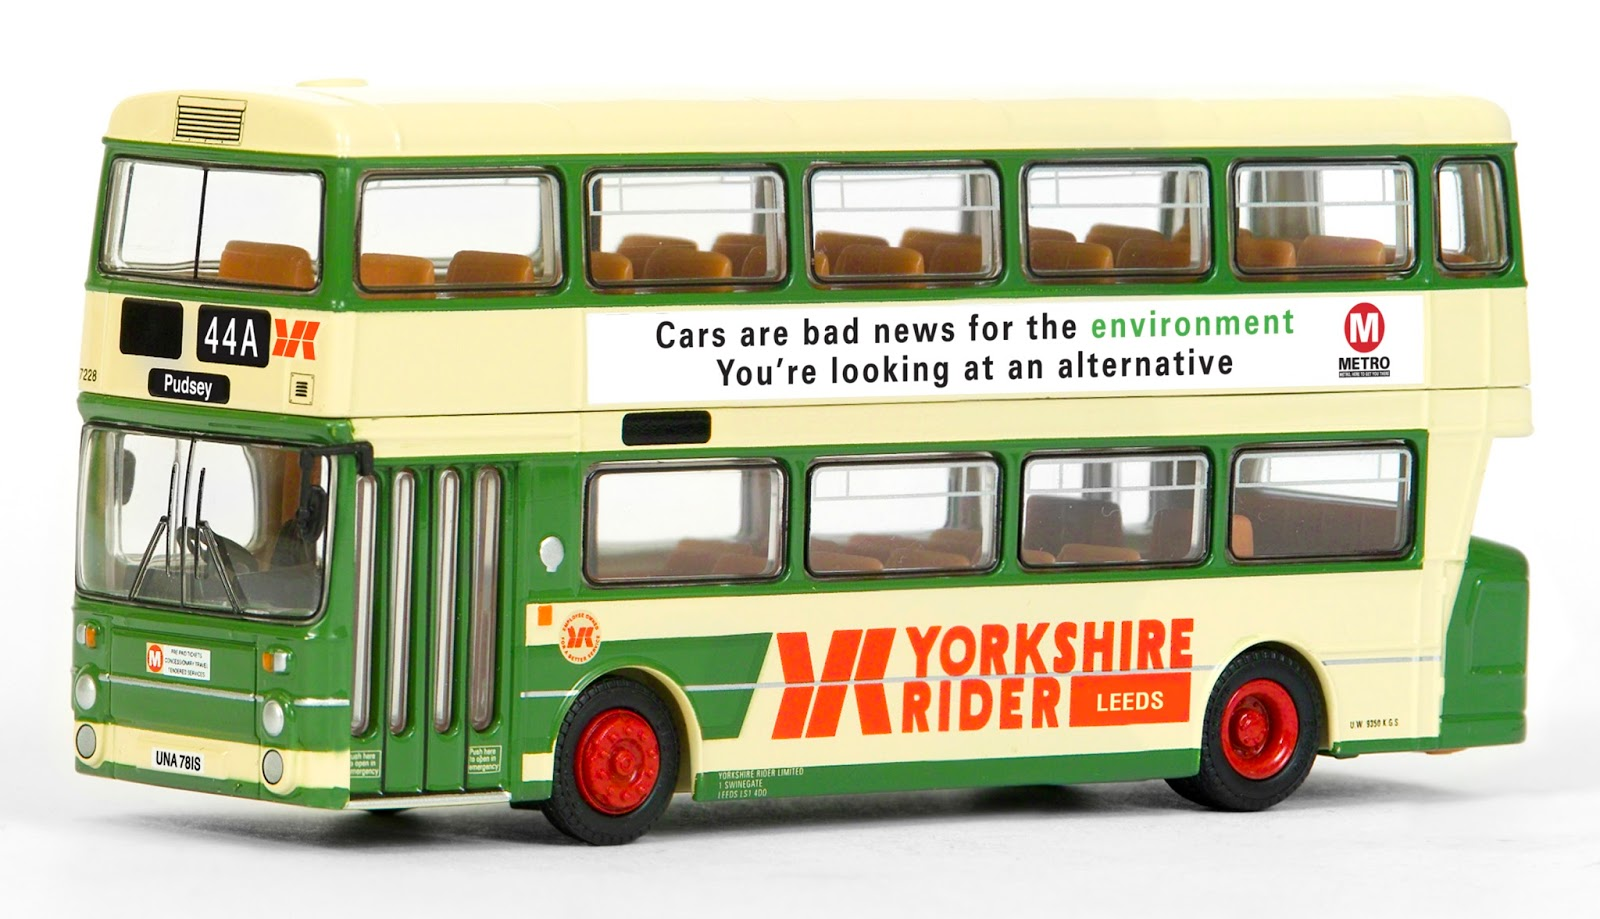 EFE 28909 - GM Standard Atlantean - Yorkshire Rider Leeds Our GM Standard Atlantean adds to the model fleet of Yorkshire Rider vehicles. Registered UNA 781S, fleet number 6419 works route 44A to Pudsey and fits in nicely with our Leeds Bristol VR III.  RRP £32.50